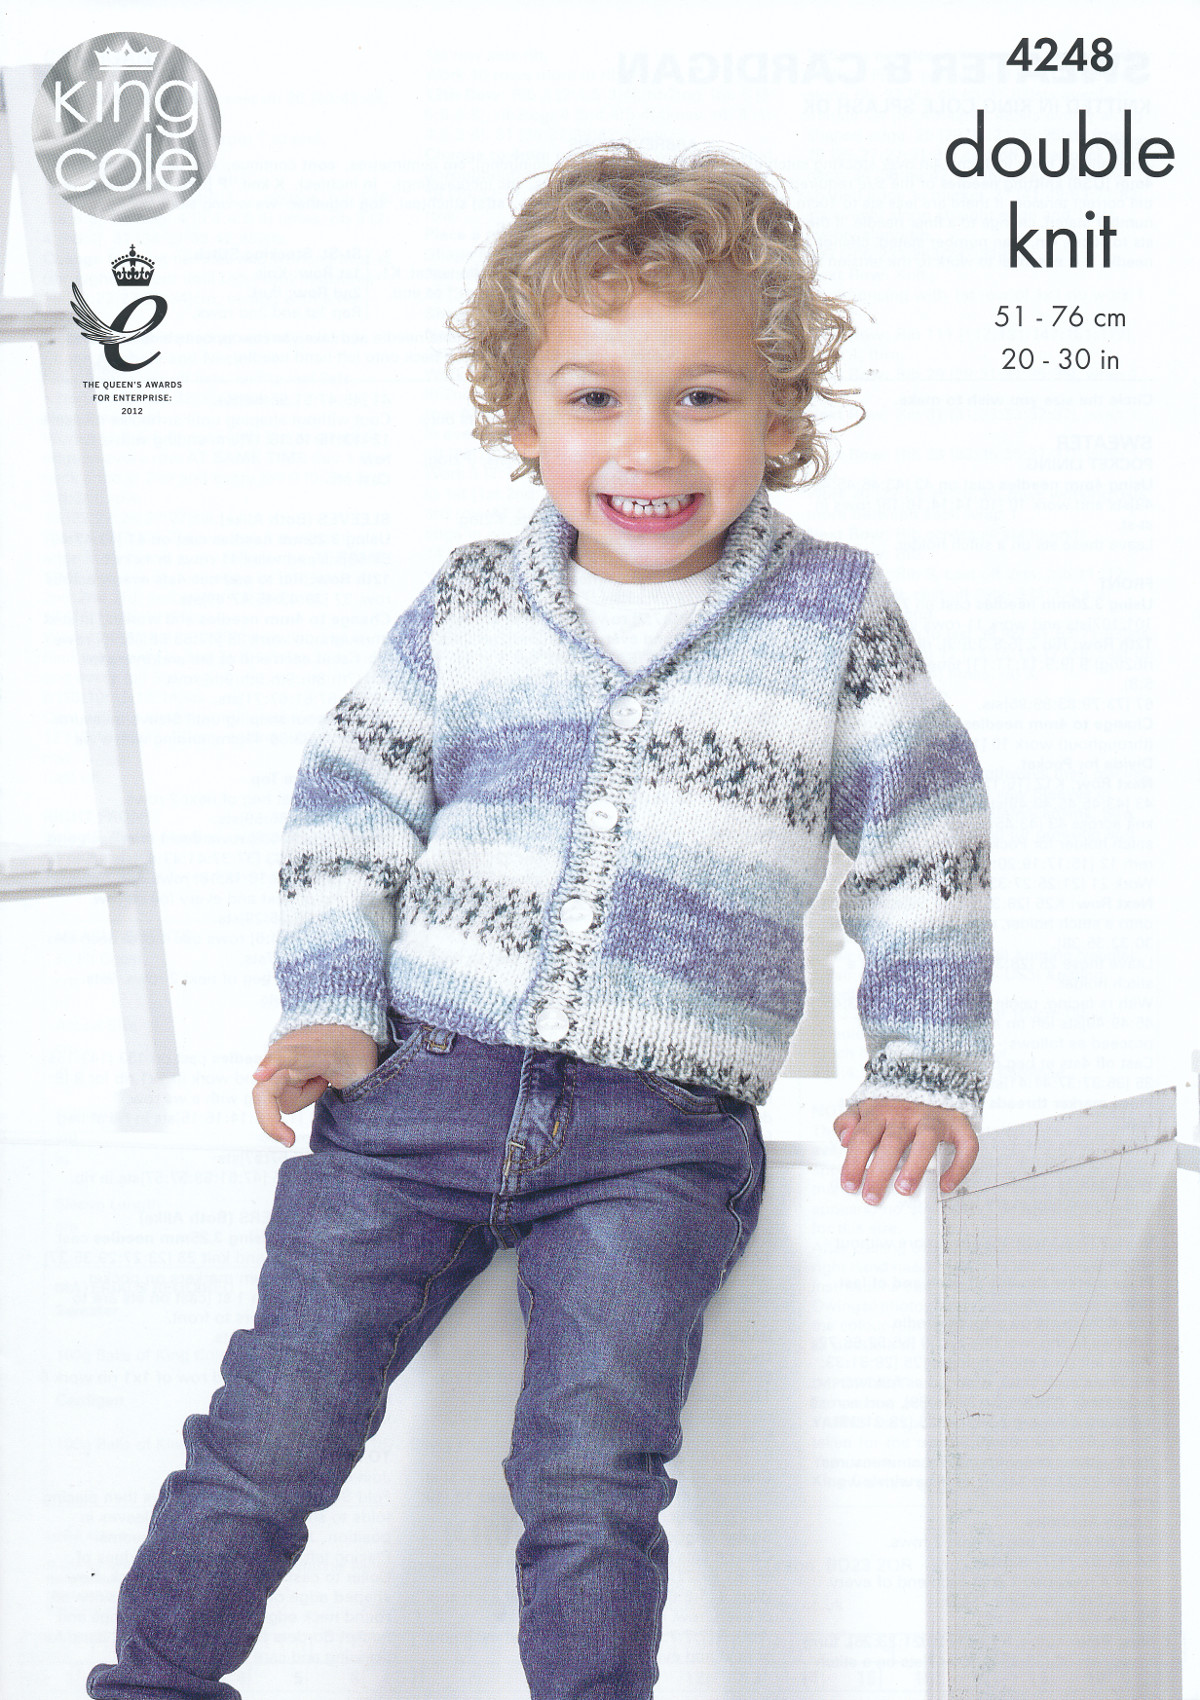 King Cole Splash DK Double Knitting Pattern Childrens Boys Cardigan ...